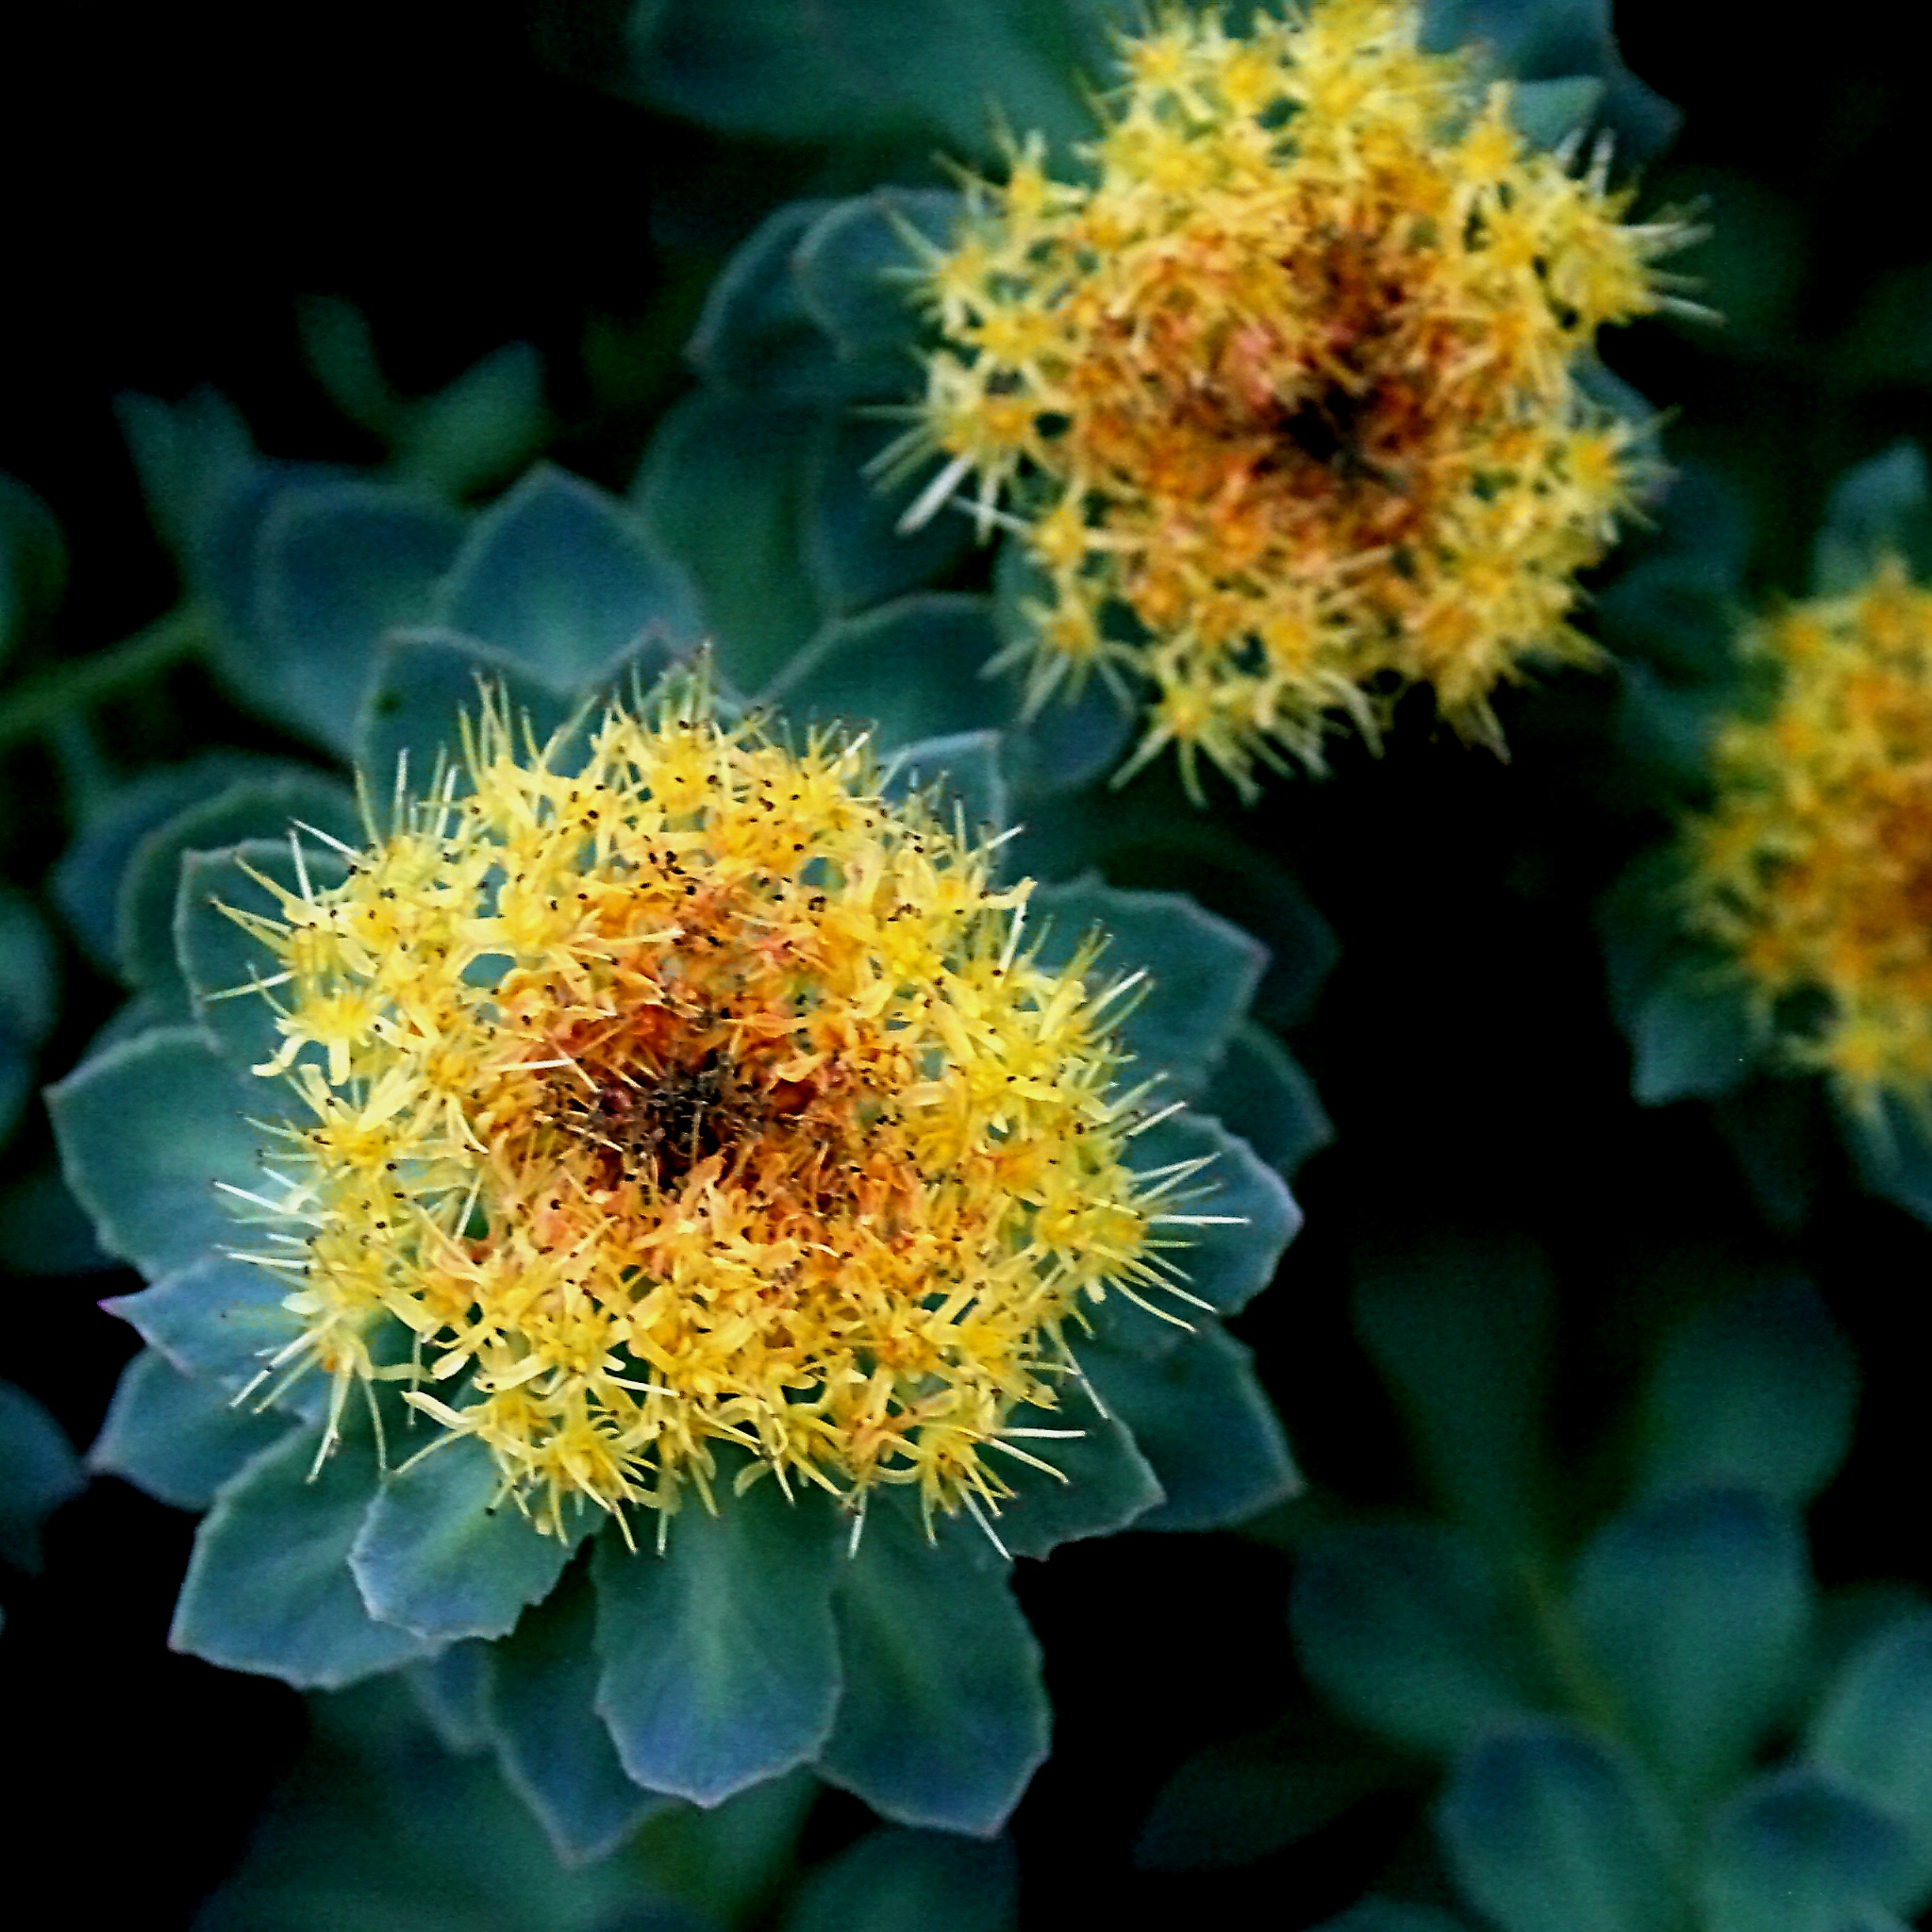 The rhodiola rosea plant. Rhodiola can lower cortisol levels if your cortisol levels are high.